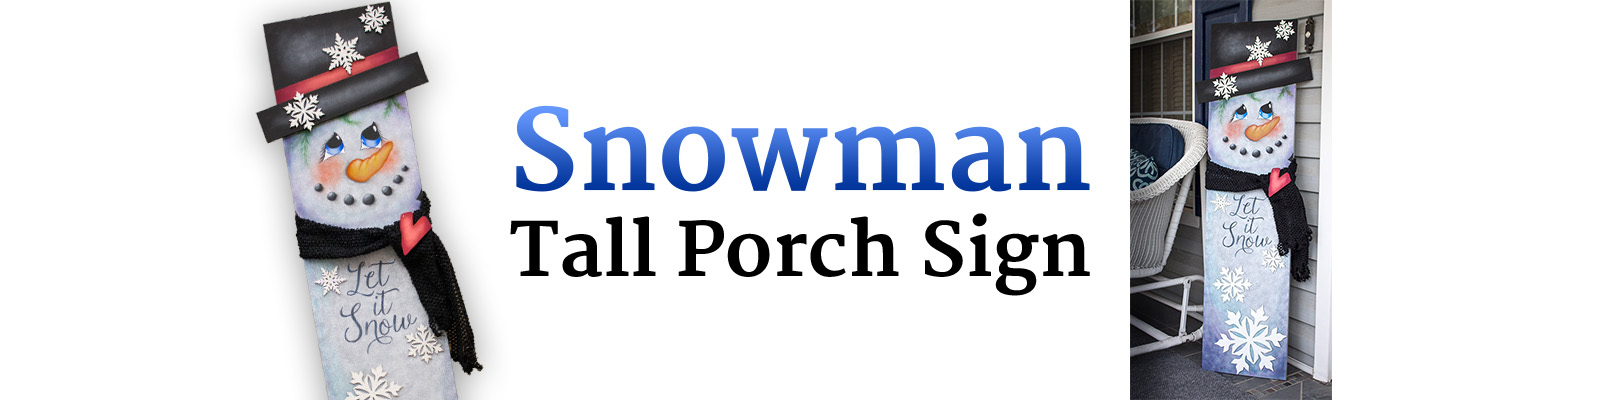 snowman-porch-sign-banner-1-.jpg